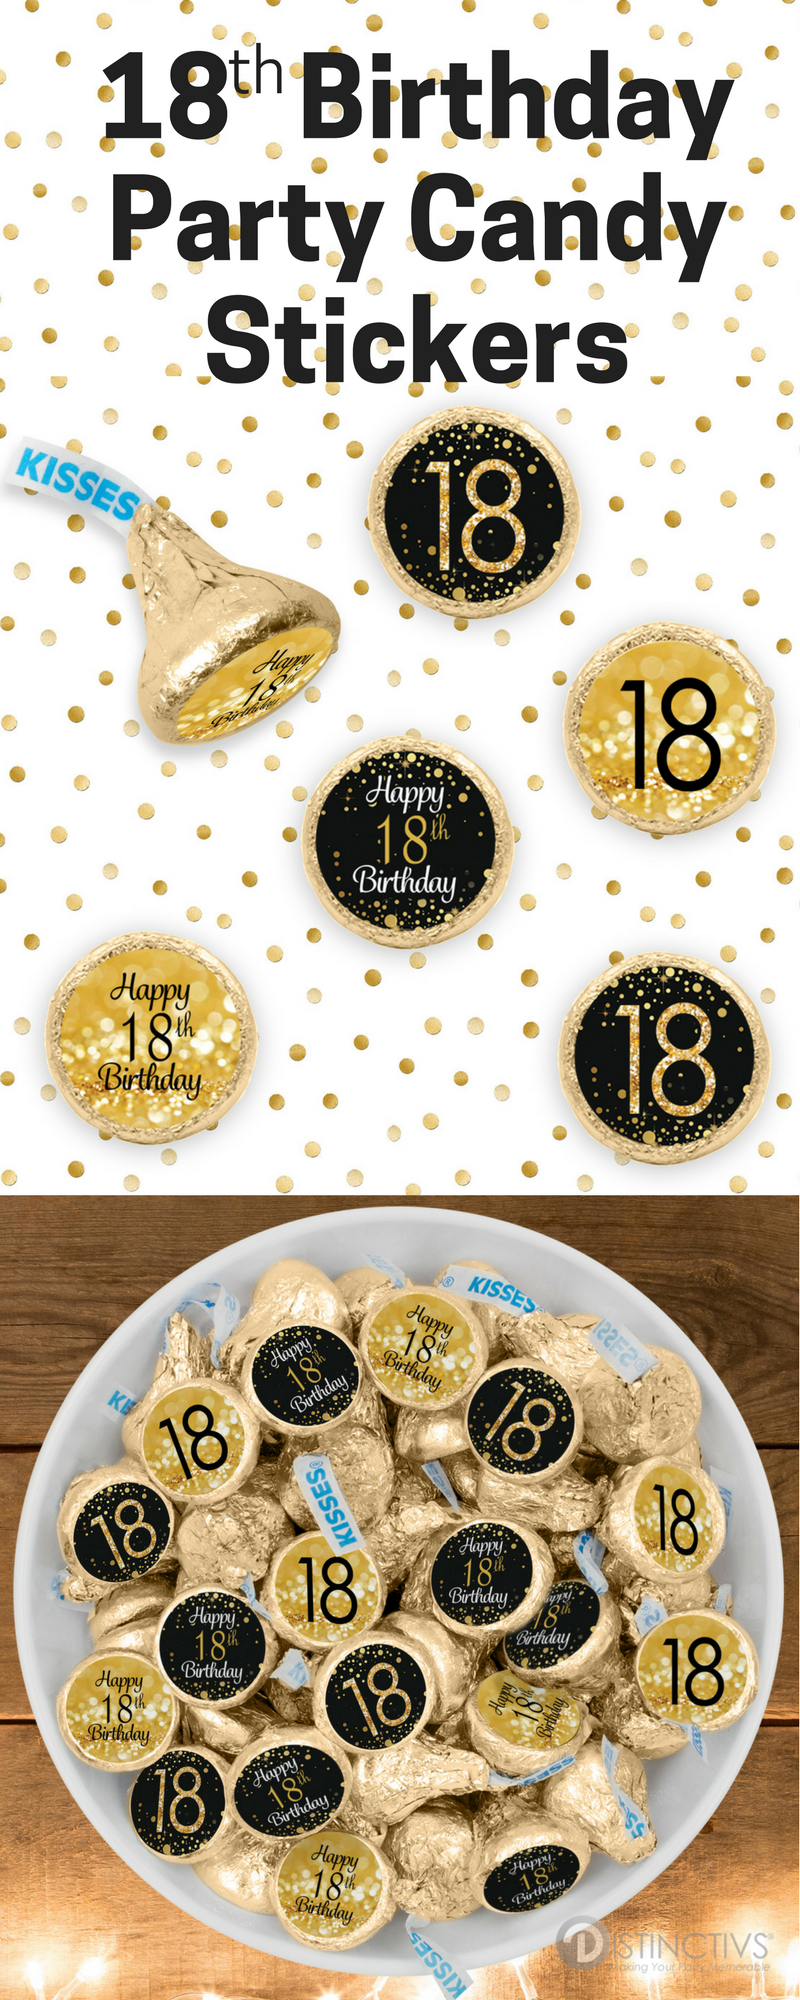 Black And Gold 18th Birthday Party Favor Stickers 180 Count In 2021 18th Birthday Party 18th Birthday 18th Party Ideas